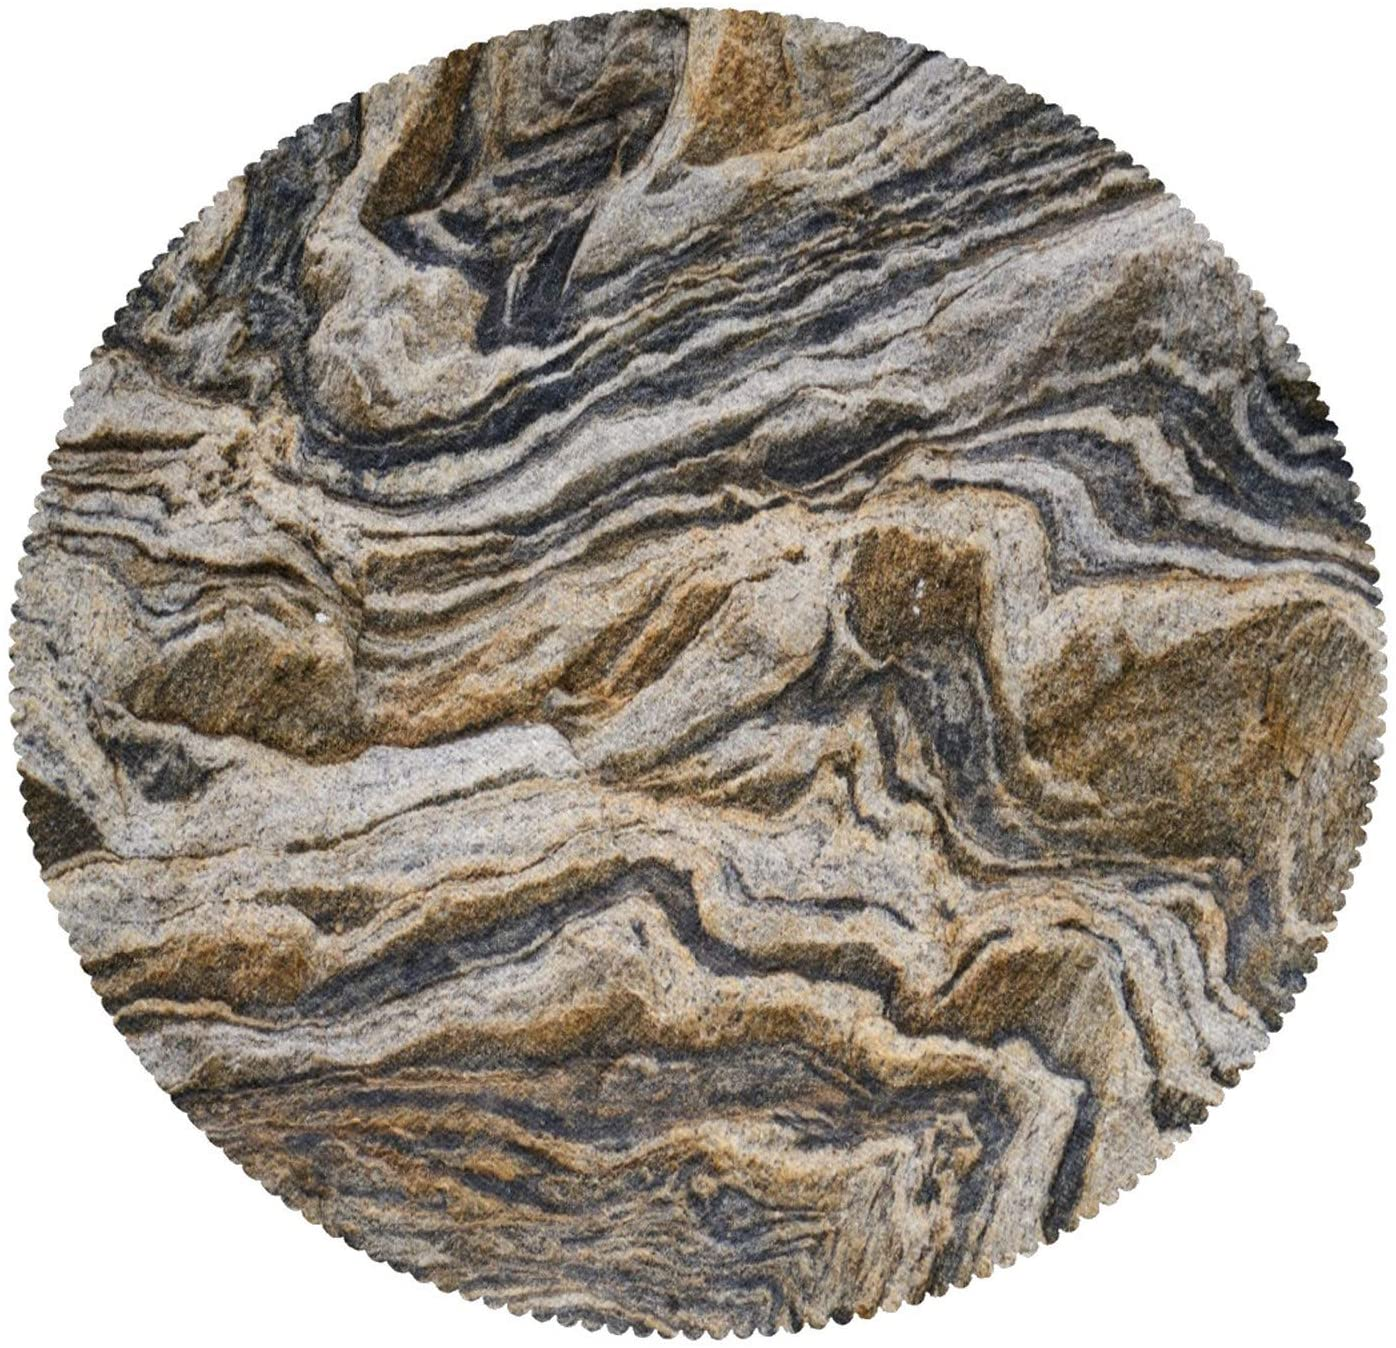 Noah's Ark Texture Brown Marble Abstract Pattern Placemats Heat-Resistant Table Mat Washable Stain Resistant Anti-Skid Polyester Place Mats for Kitchen Dining Table Decoration Set of 6